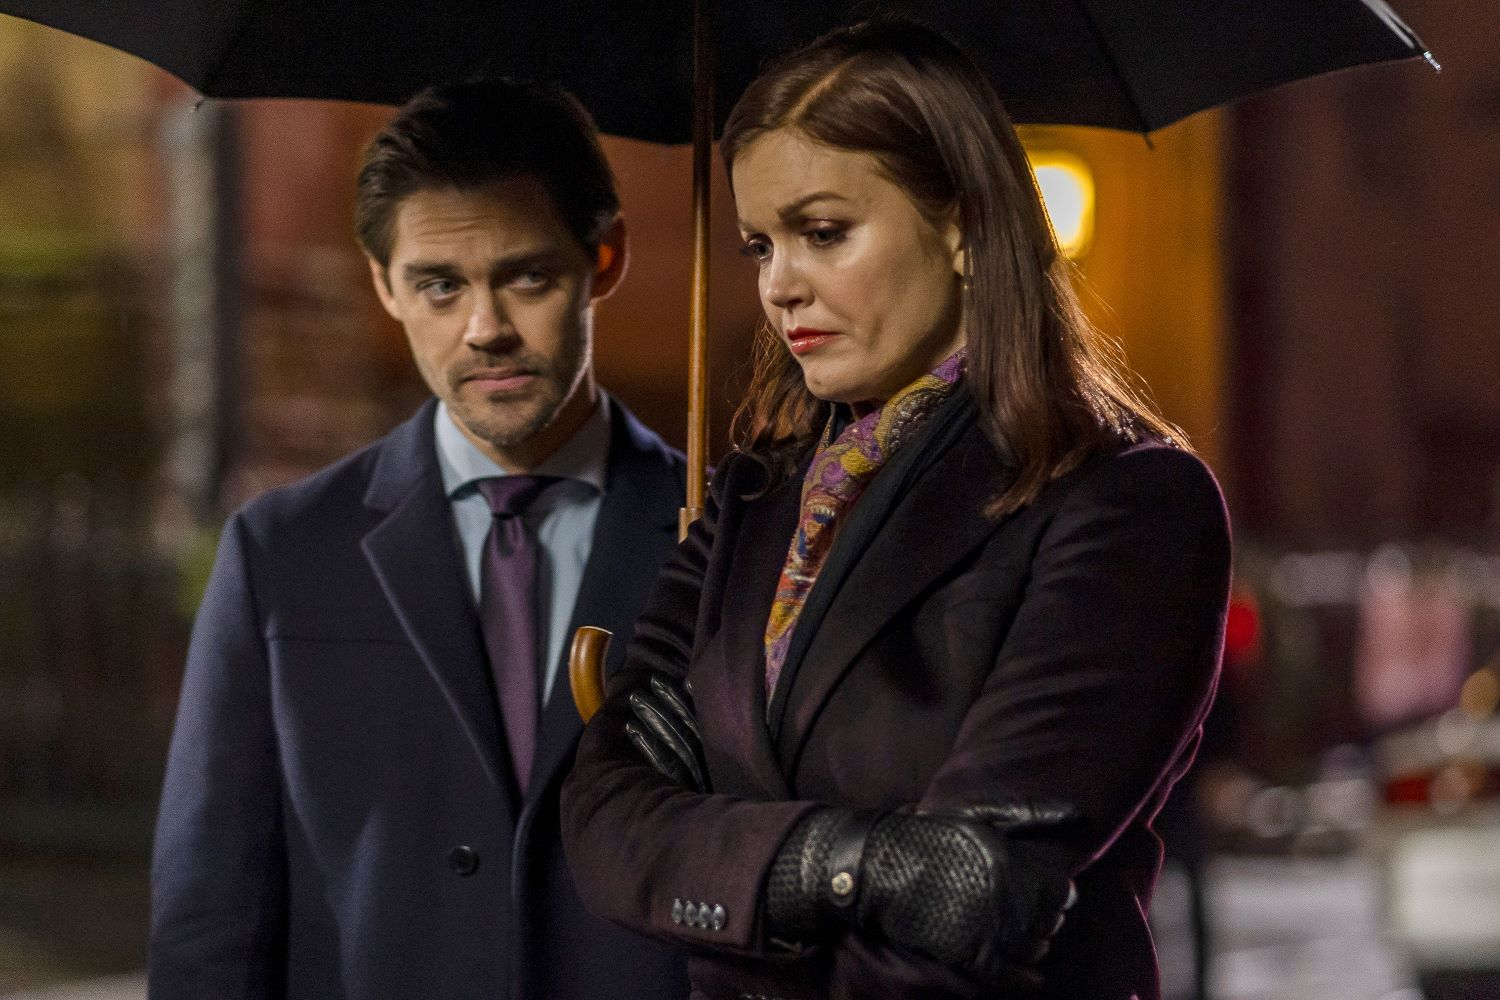 Tom Payne and Bellamy Young in 'Prodigal Son'